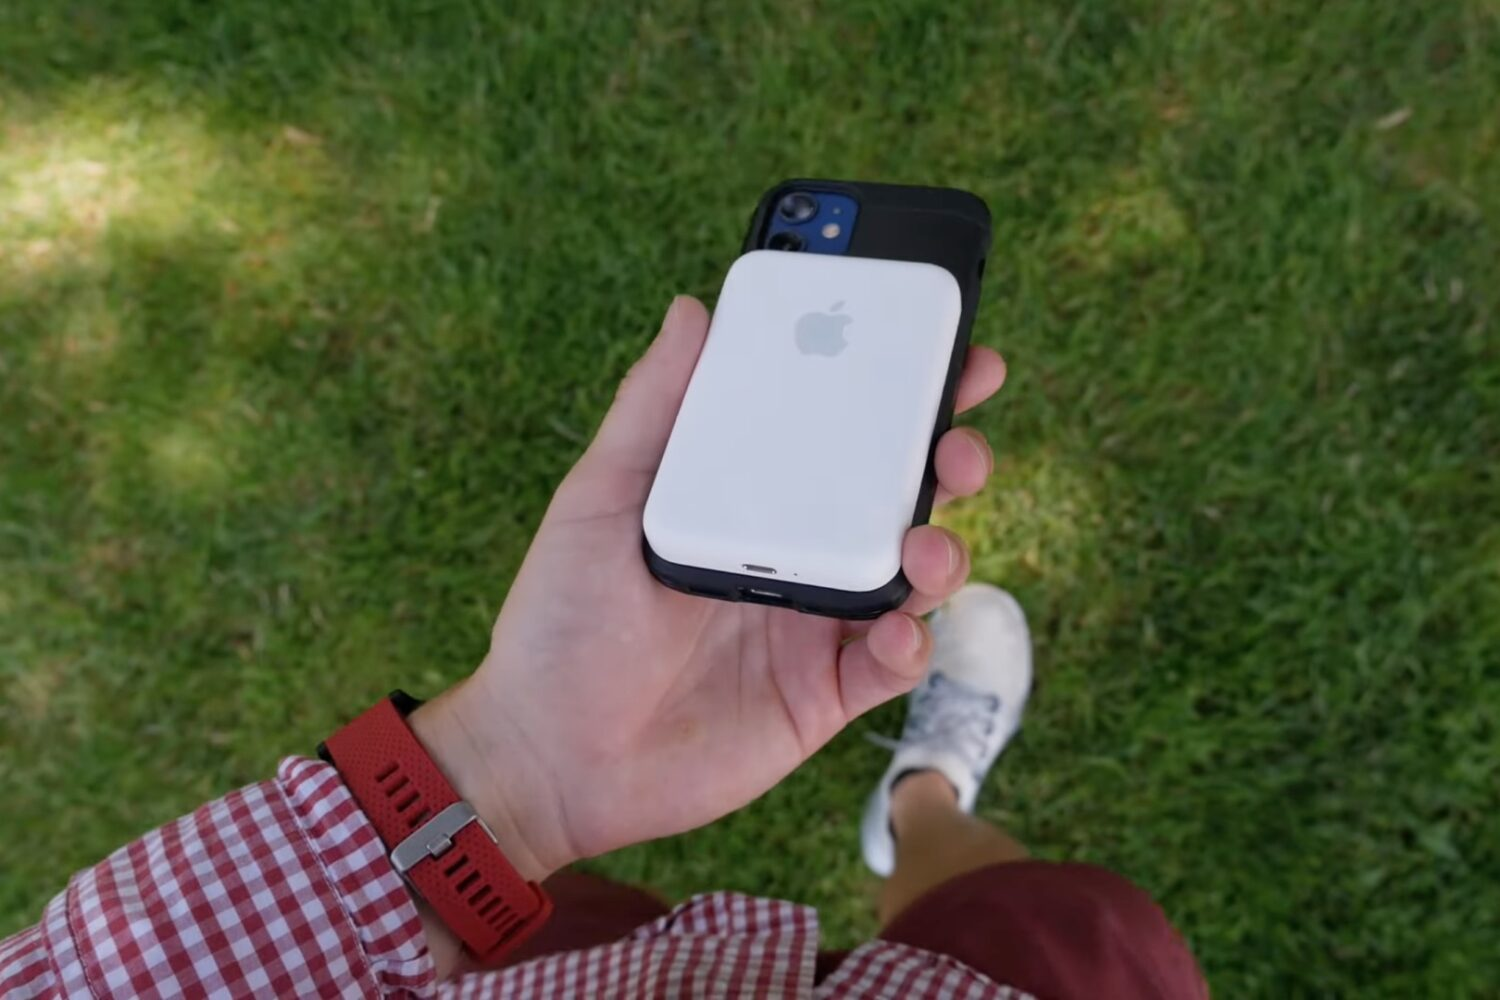 A photo showing a person walking out in the park, holding an iPhone 12 with Apple's MagSafe Battery Pack snapped onto the back